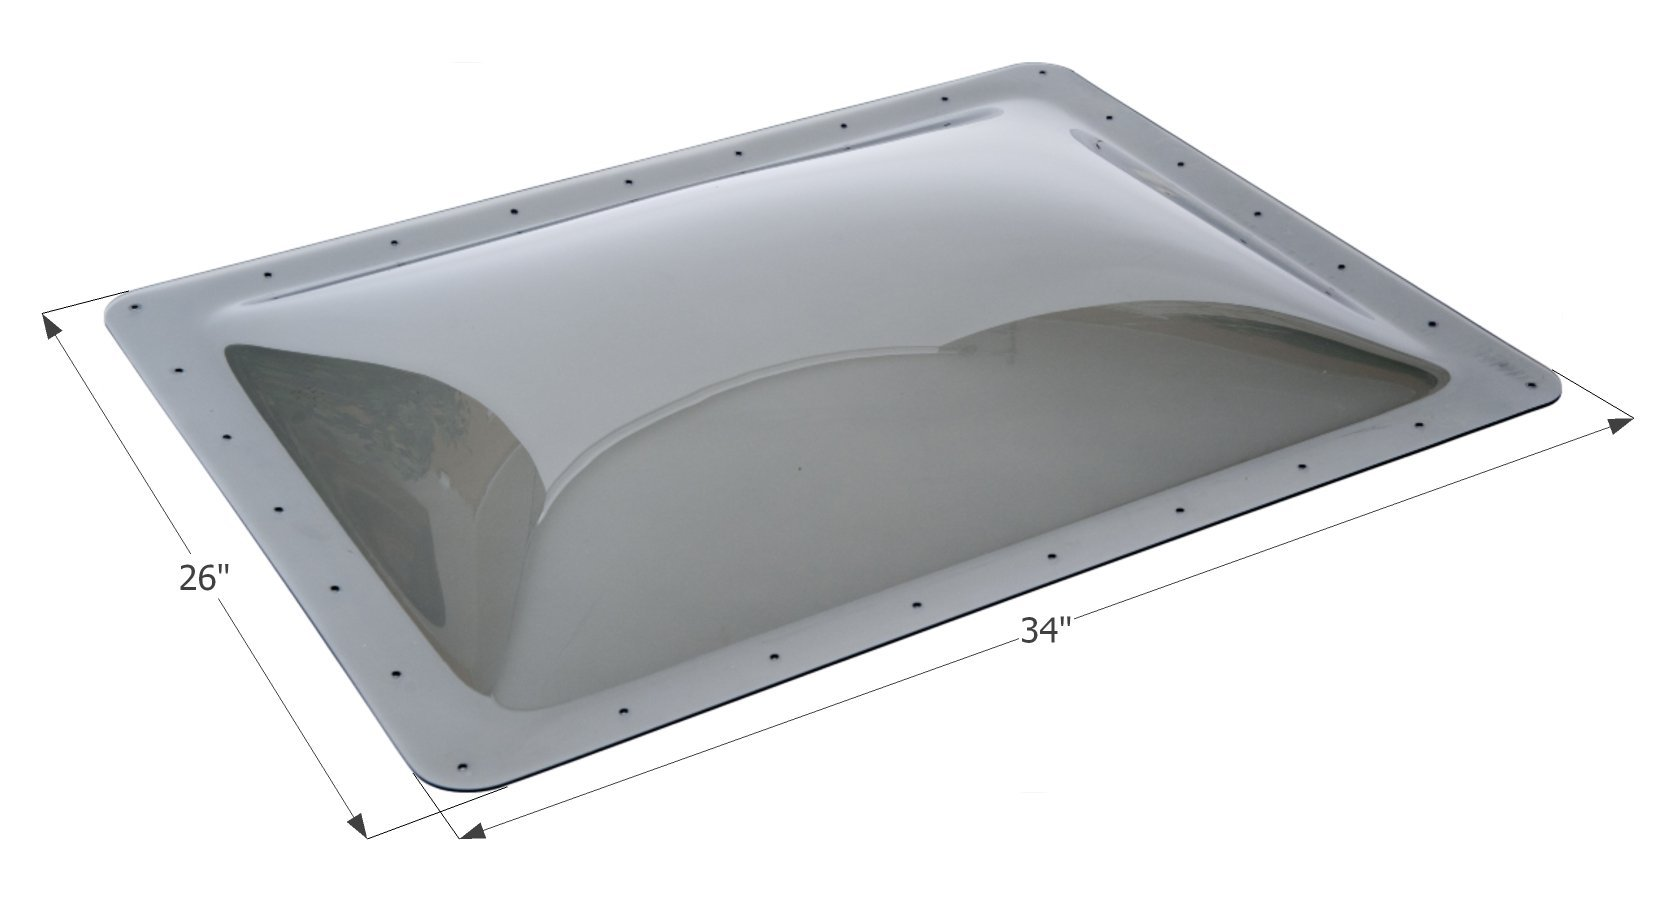 ICON 12122 RV Skylight by ICON